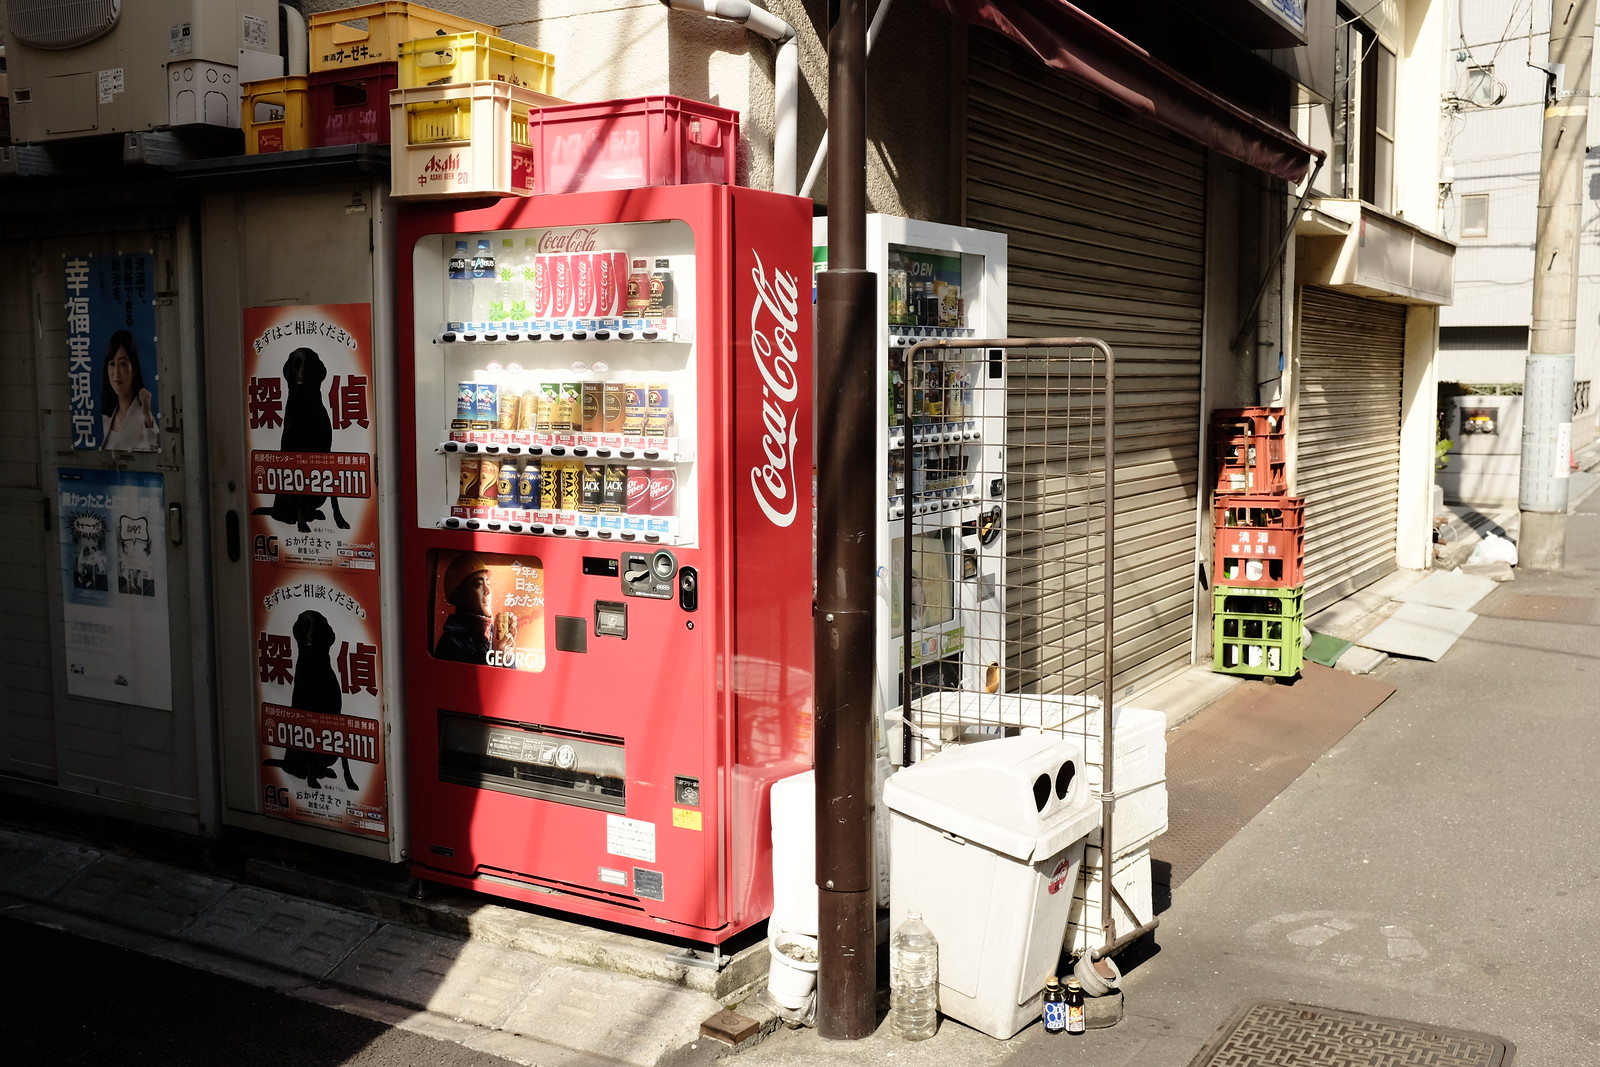 The Akihabara to Kuramae photo by FUJIFILM X100S